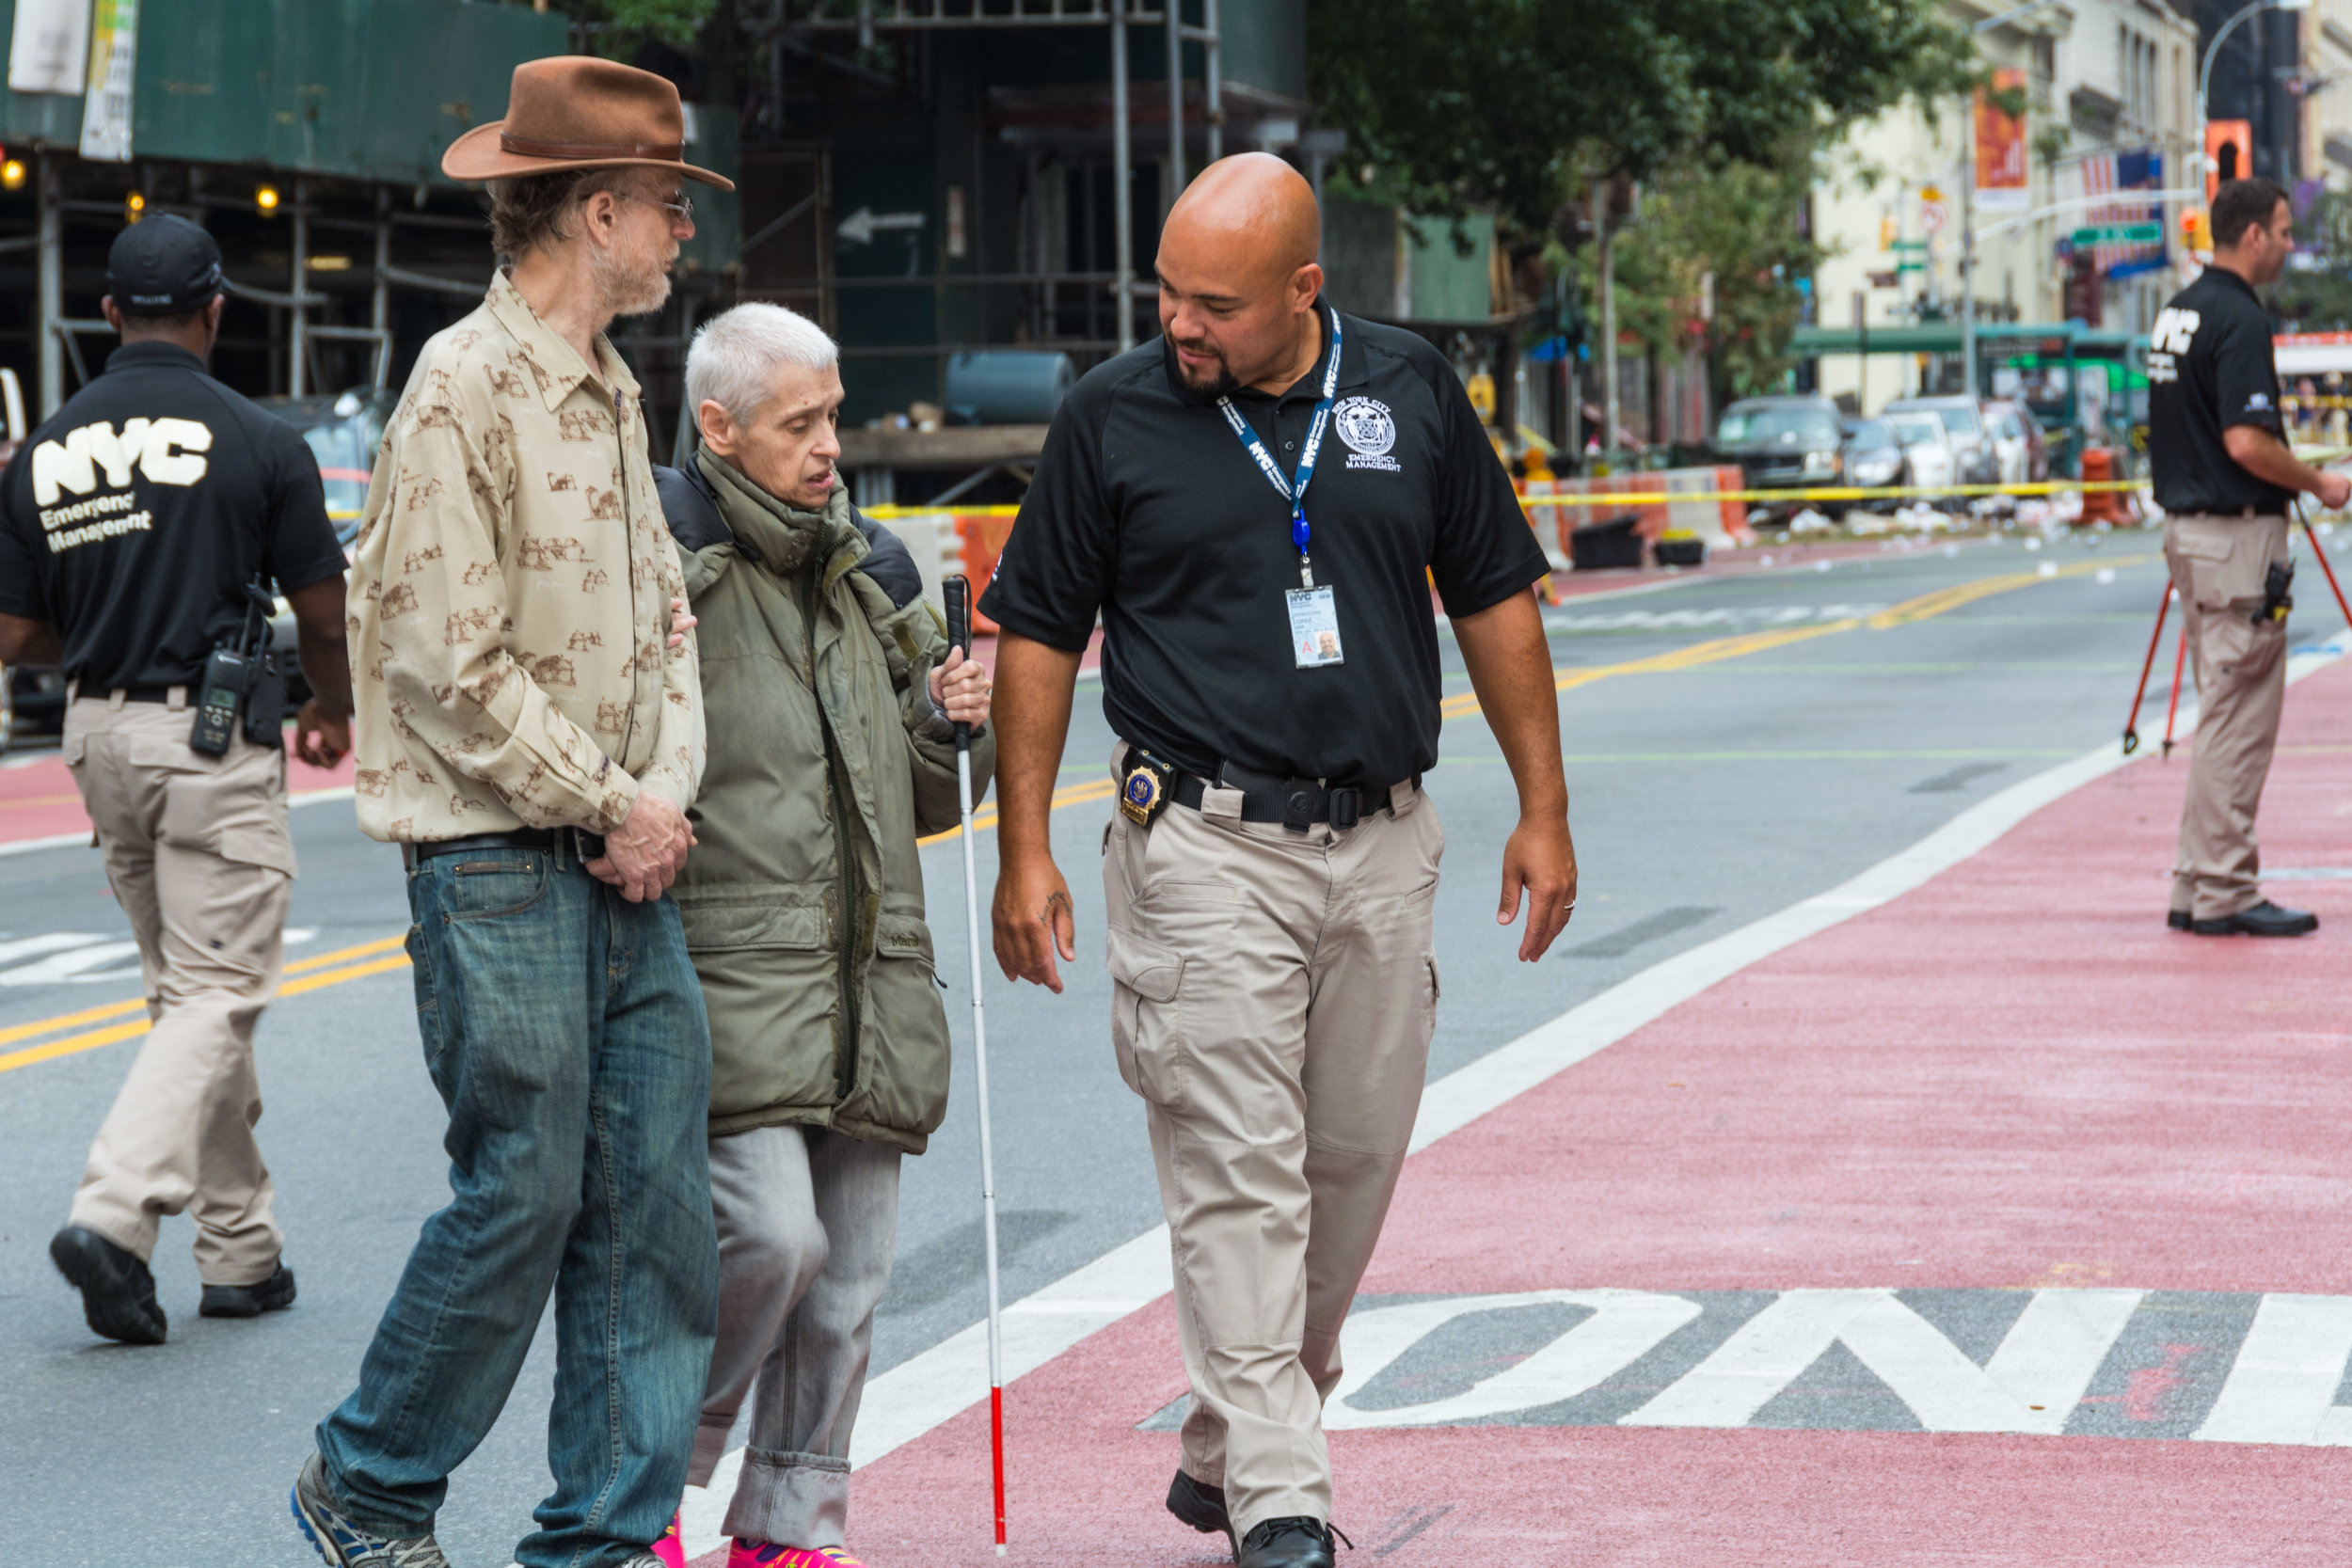 NYPD detective helps a blind resident of a nearby building Sunday afternoon.